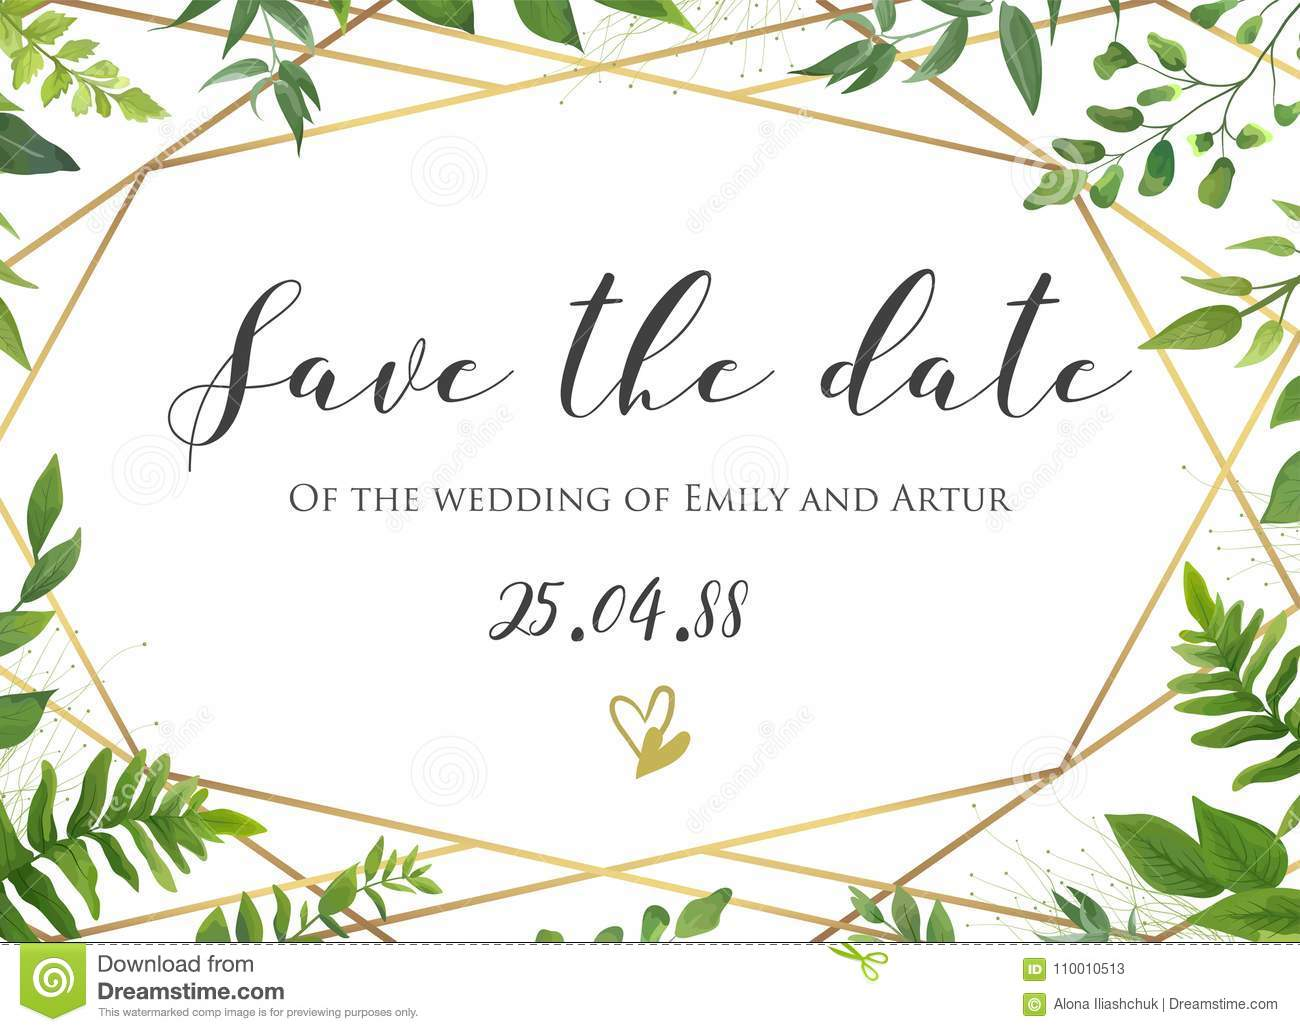 Vector botanical Wedding floral save the date, invite card elegant, modern design with natural forest green fern leaves, greenery